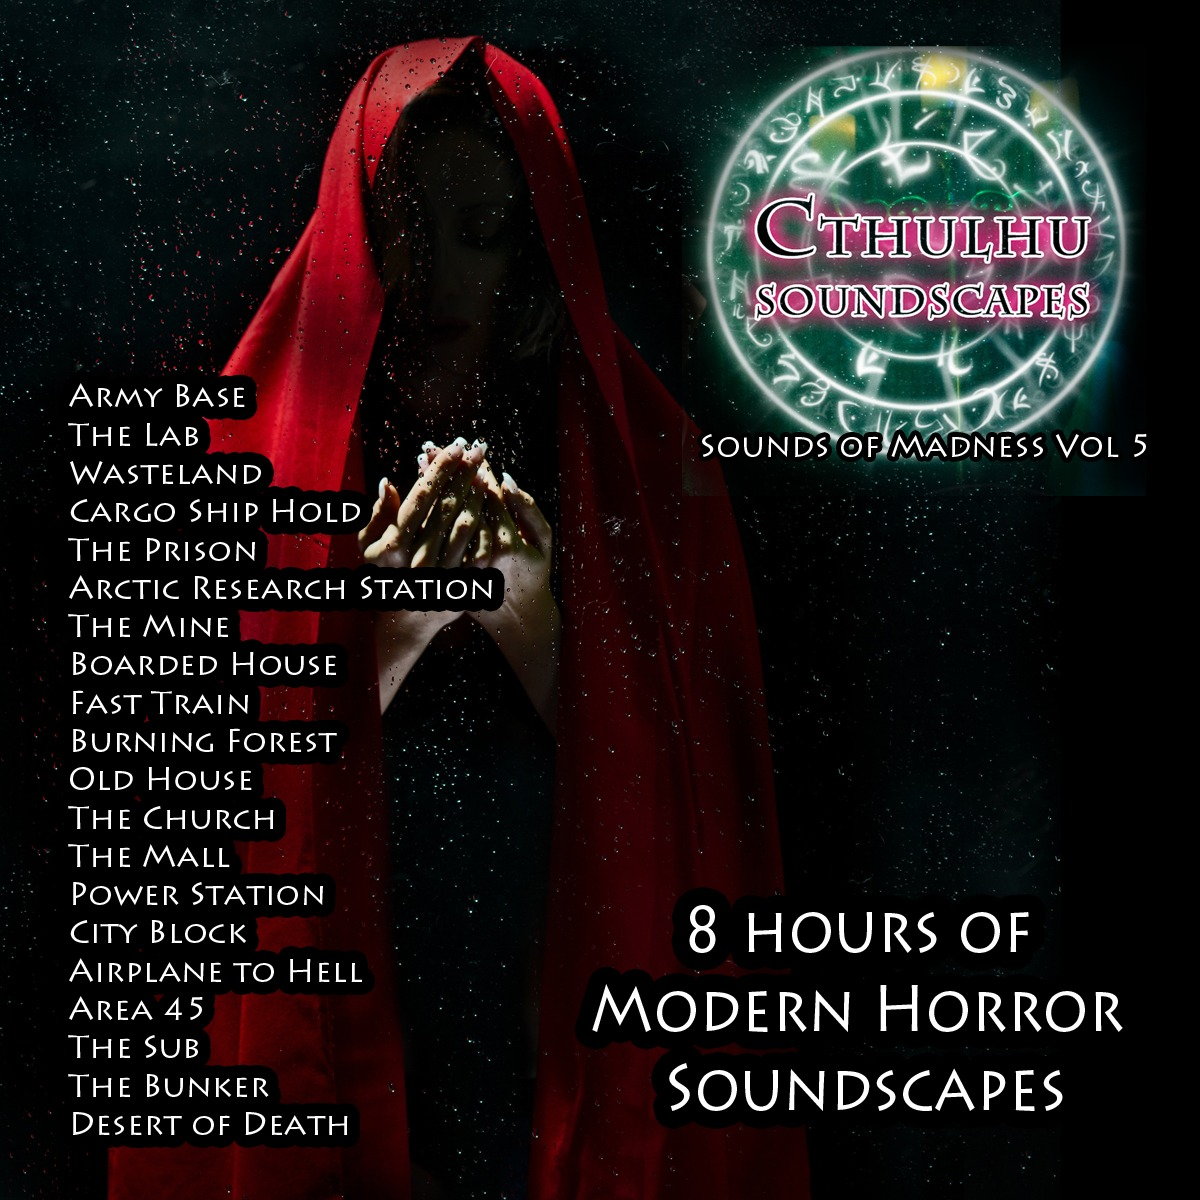 Cthulhu Soundscapes Vol: Five           Modern Horror